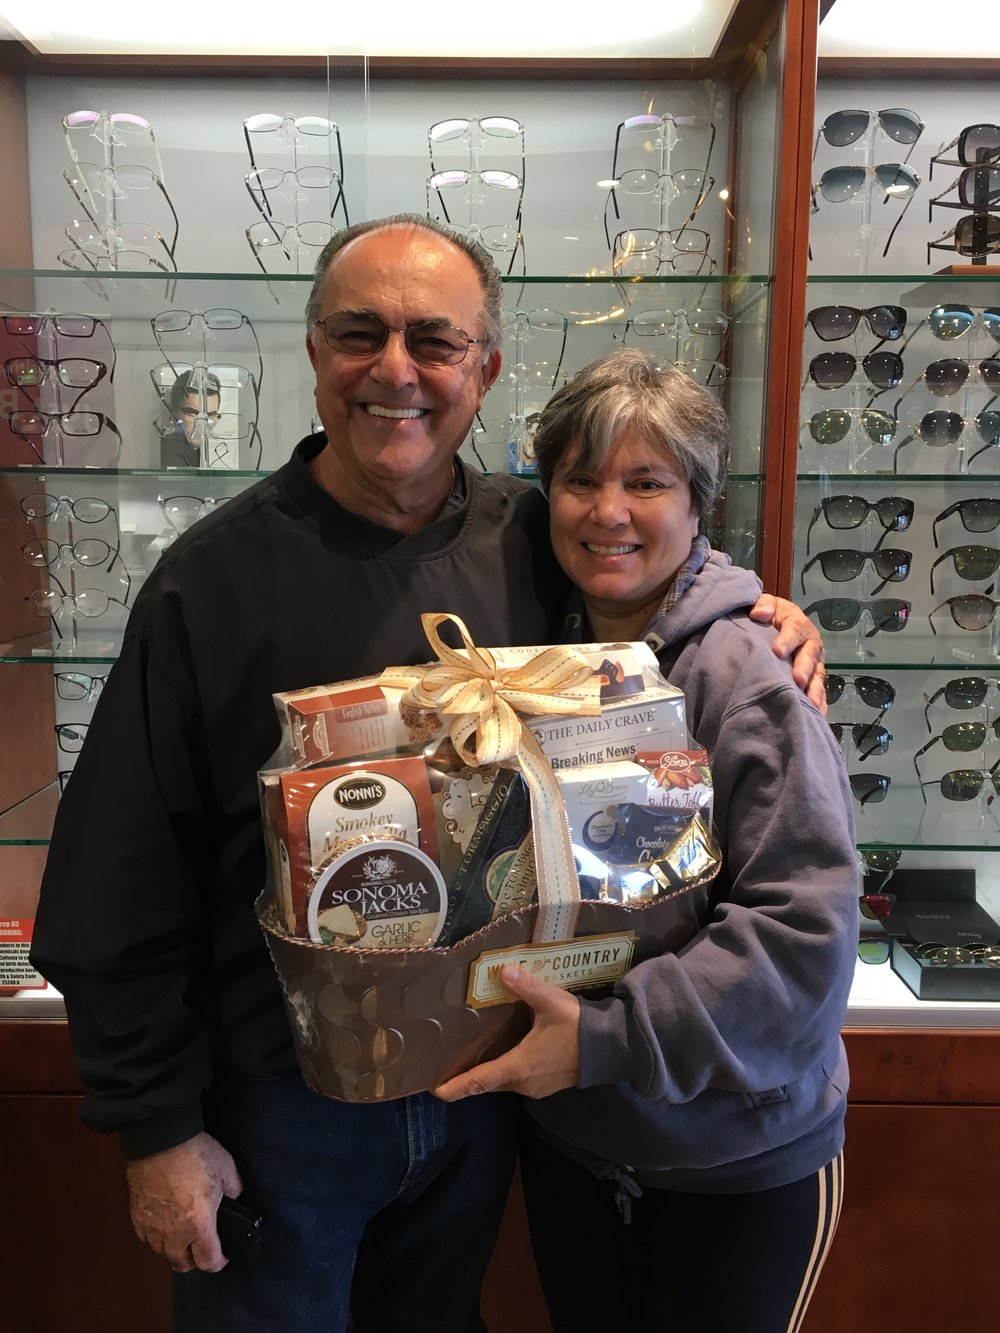 - Here is a photo of one of our raffle winners, whom have just picked up their prize. They have won a Wine Country Gift Basket!  Our next event is right around the corner. Follow us on our social media accounts to find out more. We hope to see you there!